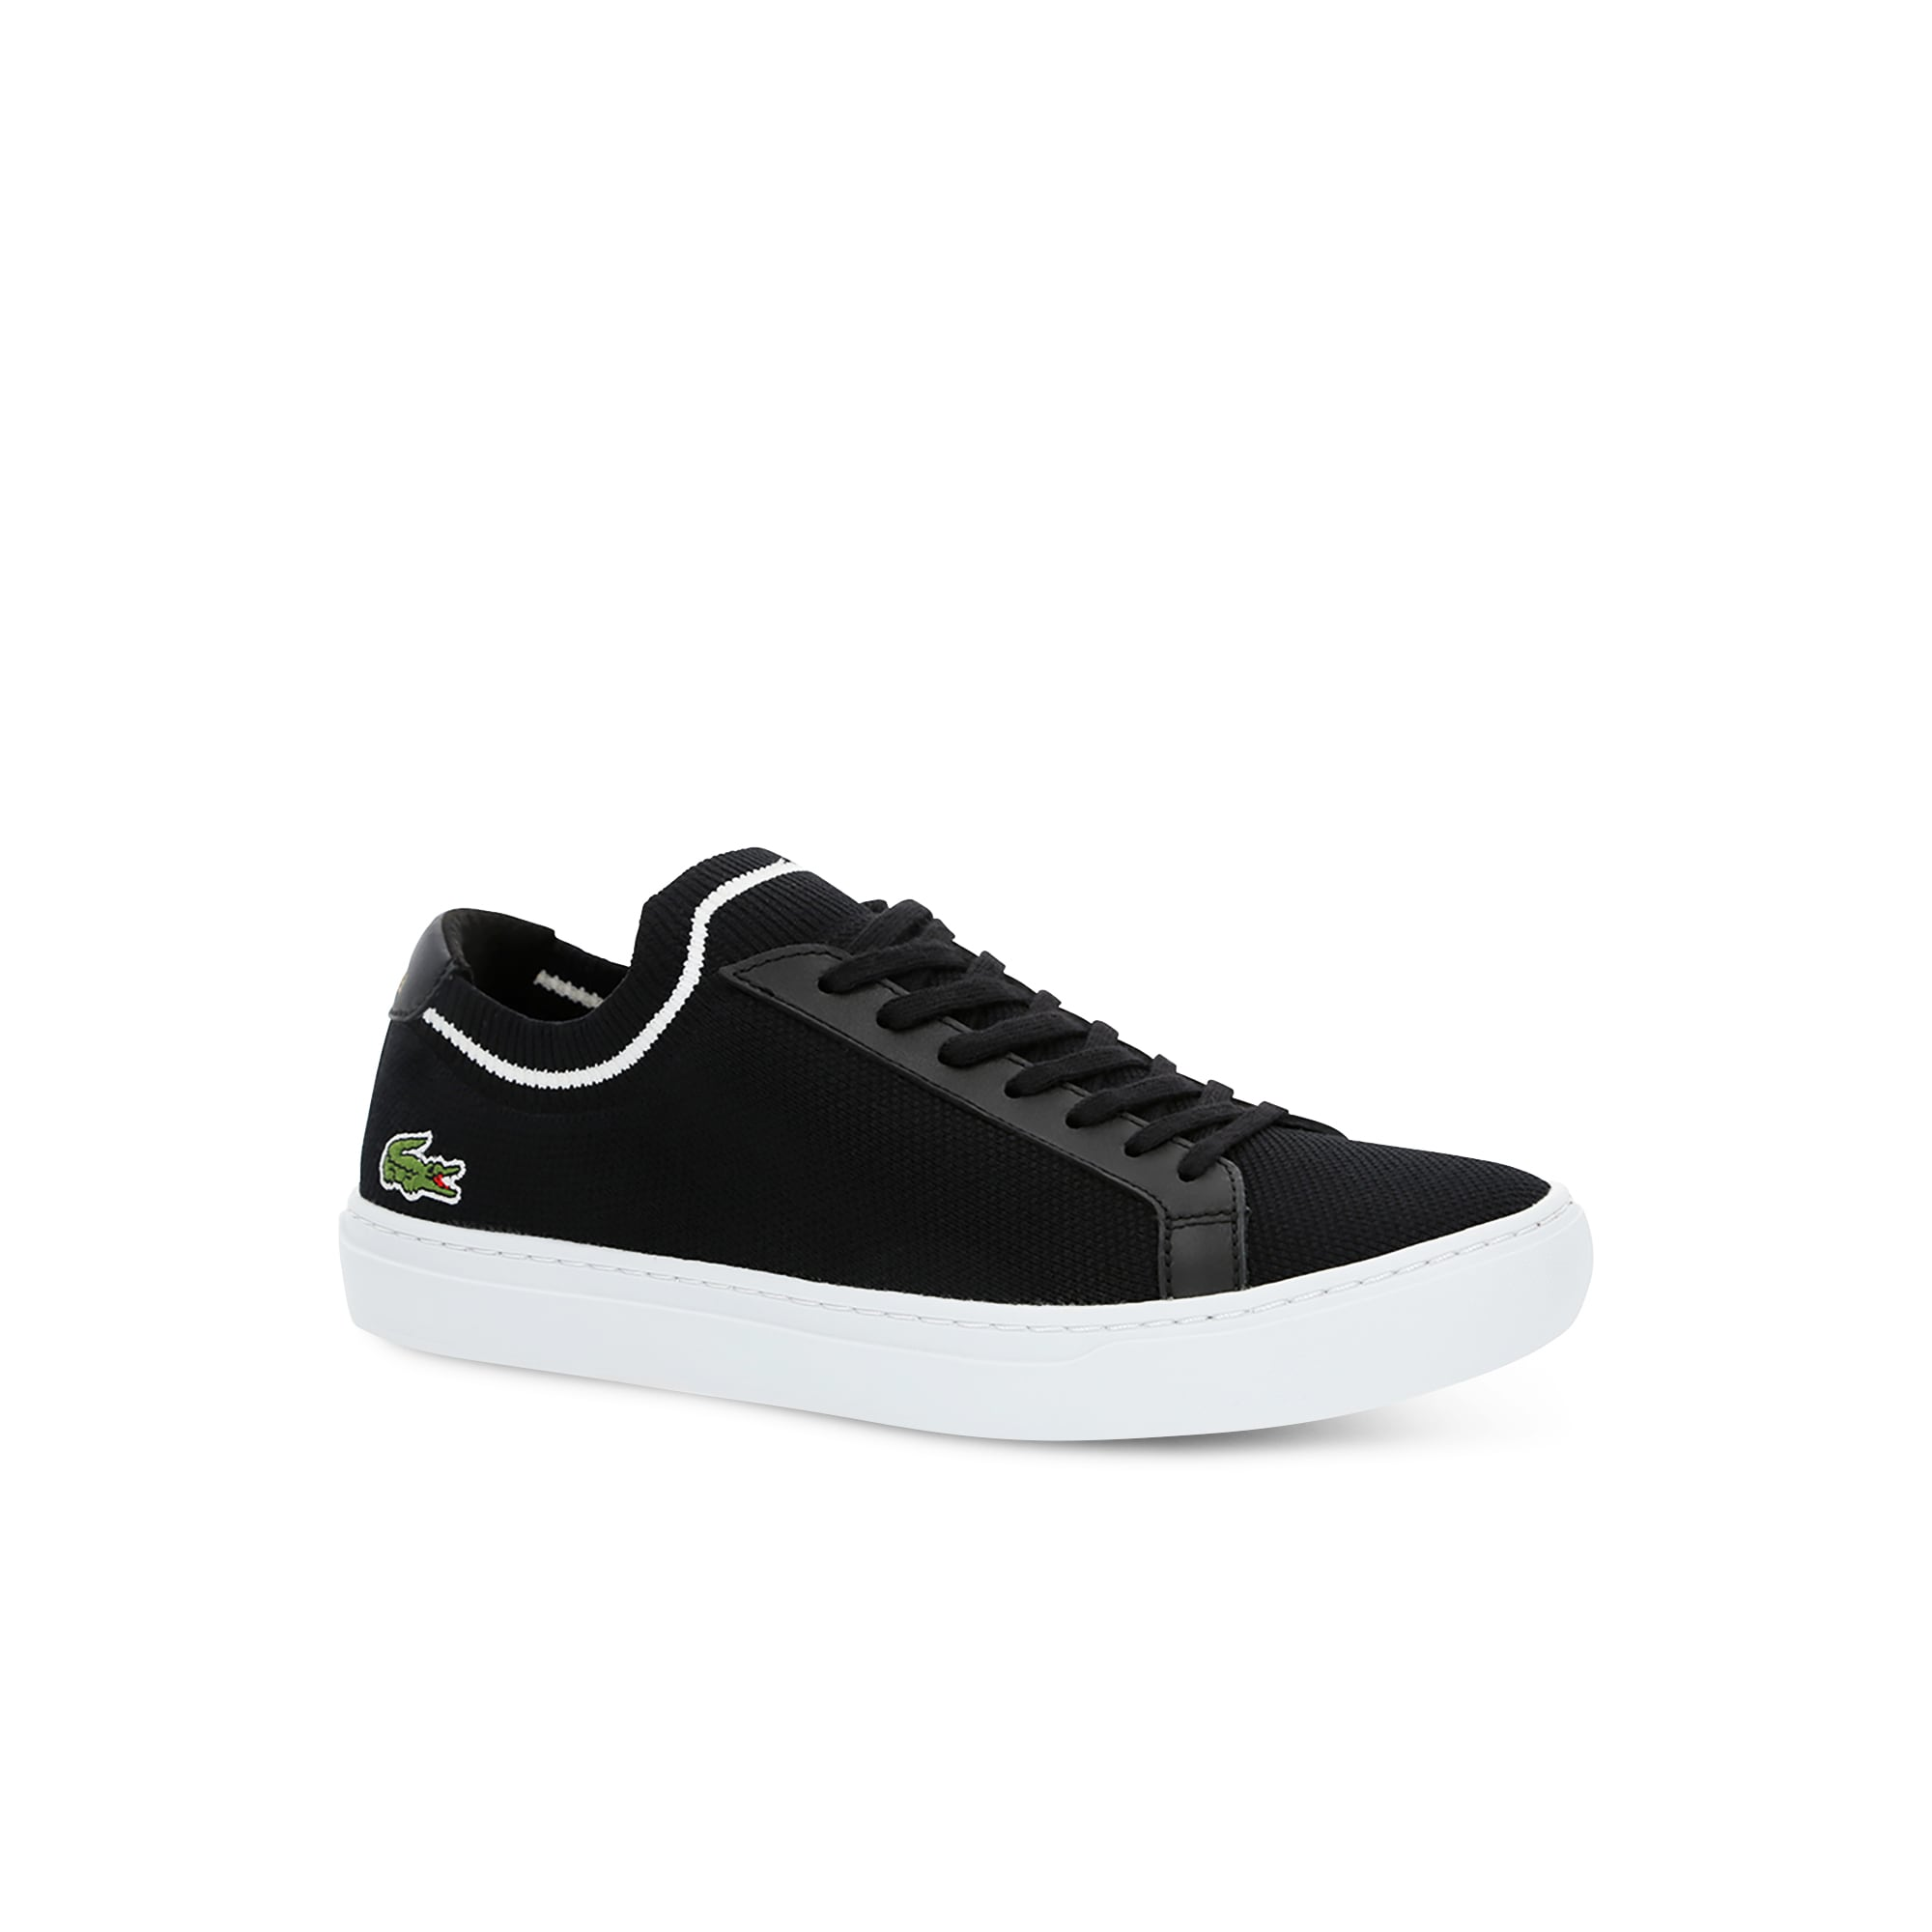 1bc962ce4 Lacoste shoes for men  Sneakers